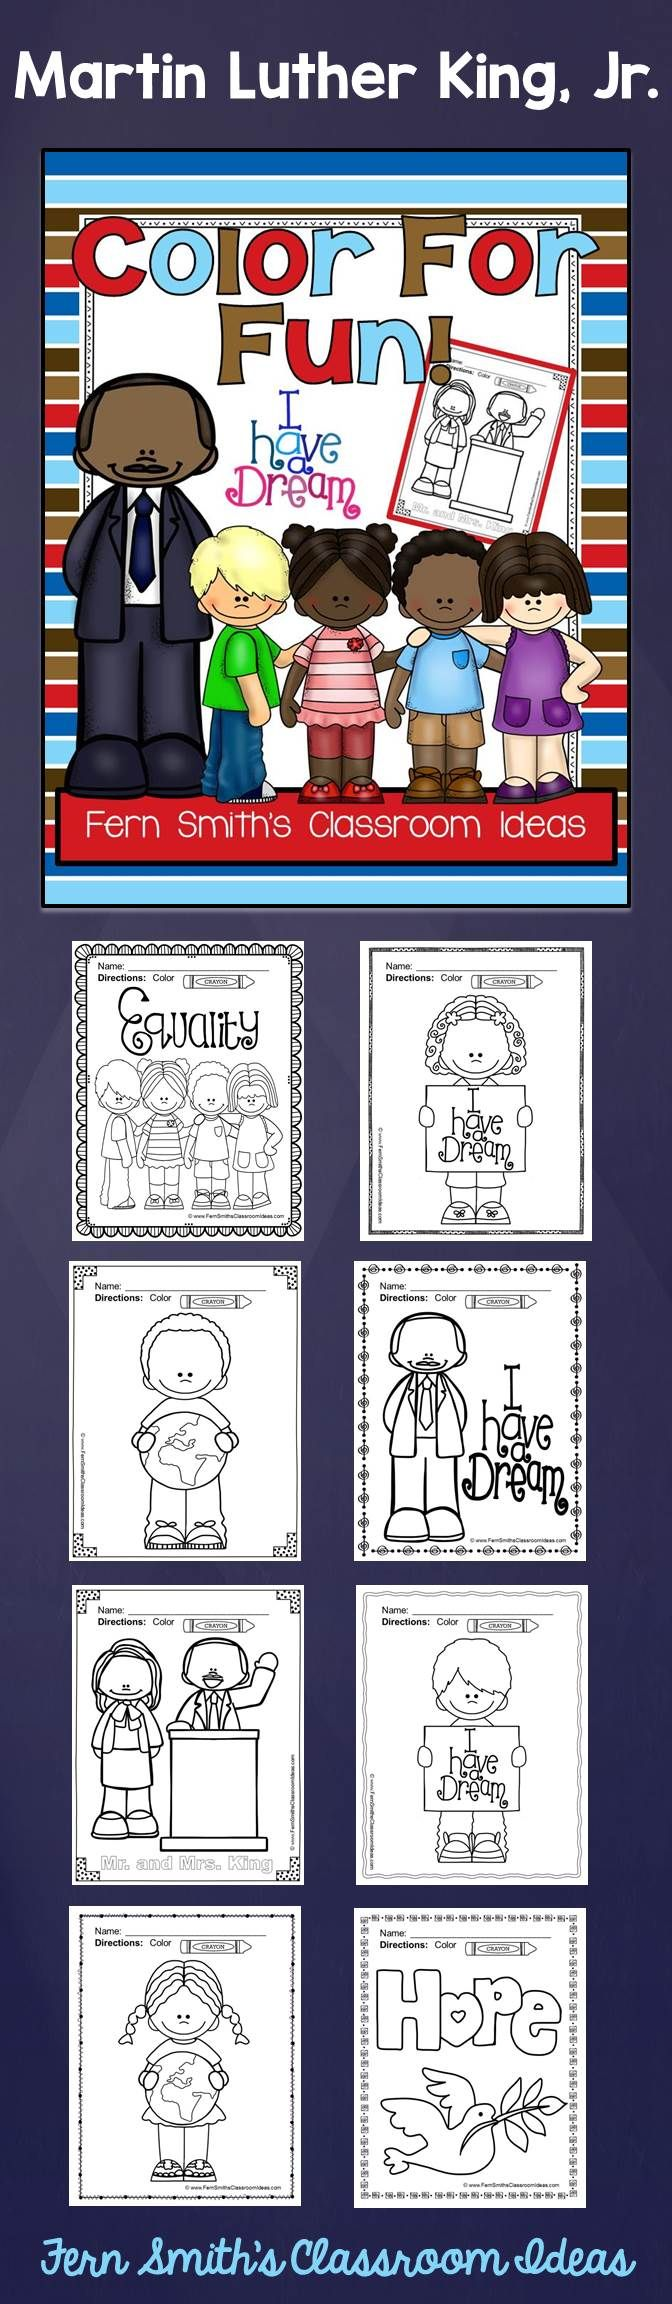 Bookmarks to color of dr king - Martin Luther King Activities Free Martin Luther King Jr Color For Fun Printable